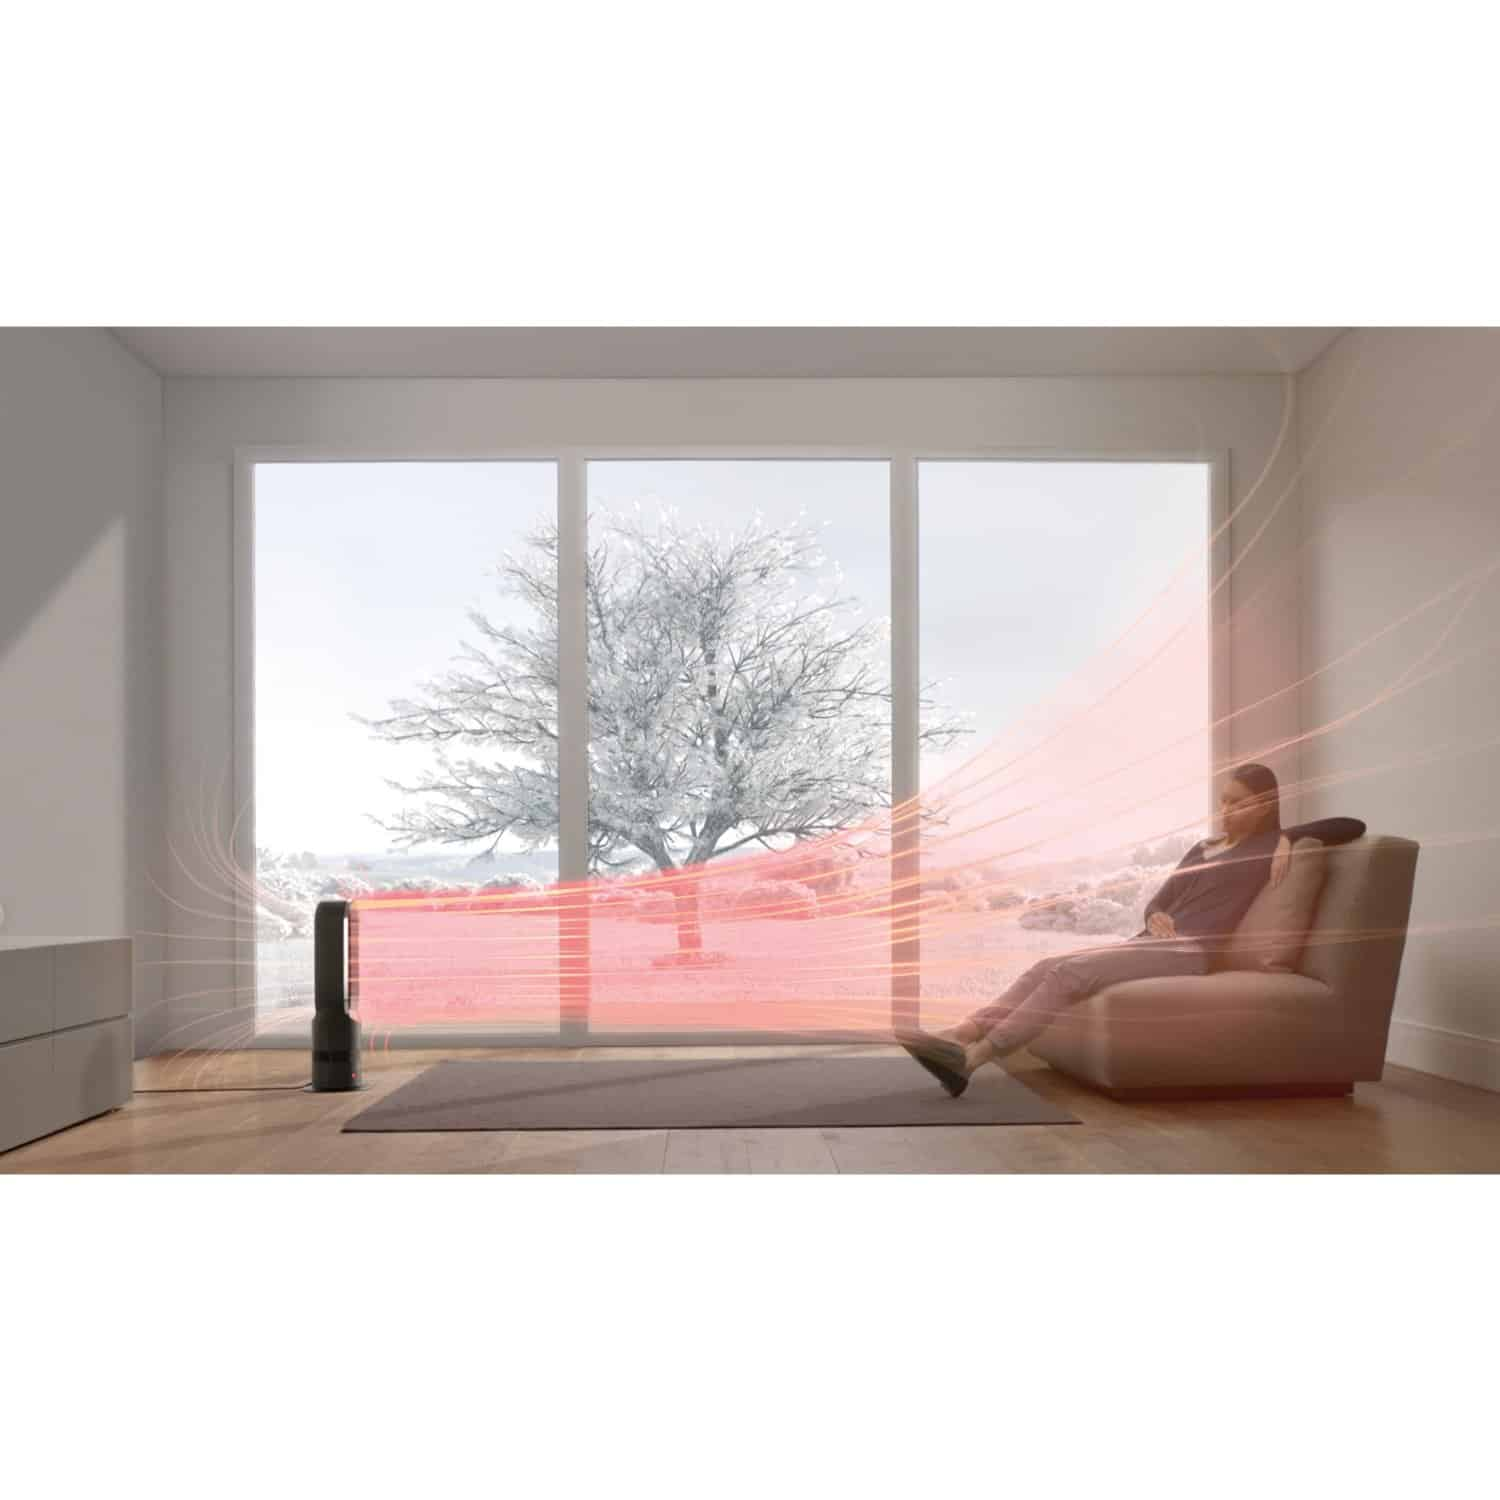 dyson am05 hot cool fan heater reviews and deals. Black Bedroom Furniture Sets. Home Design Ideas